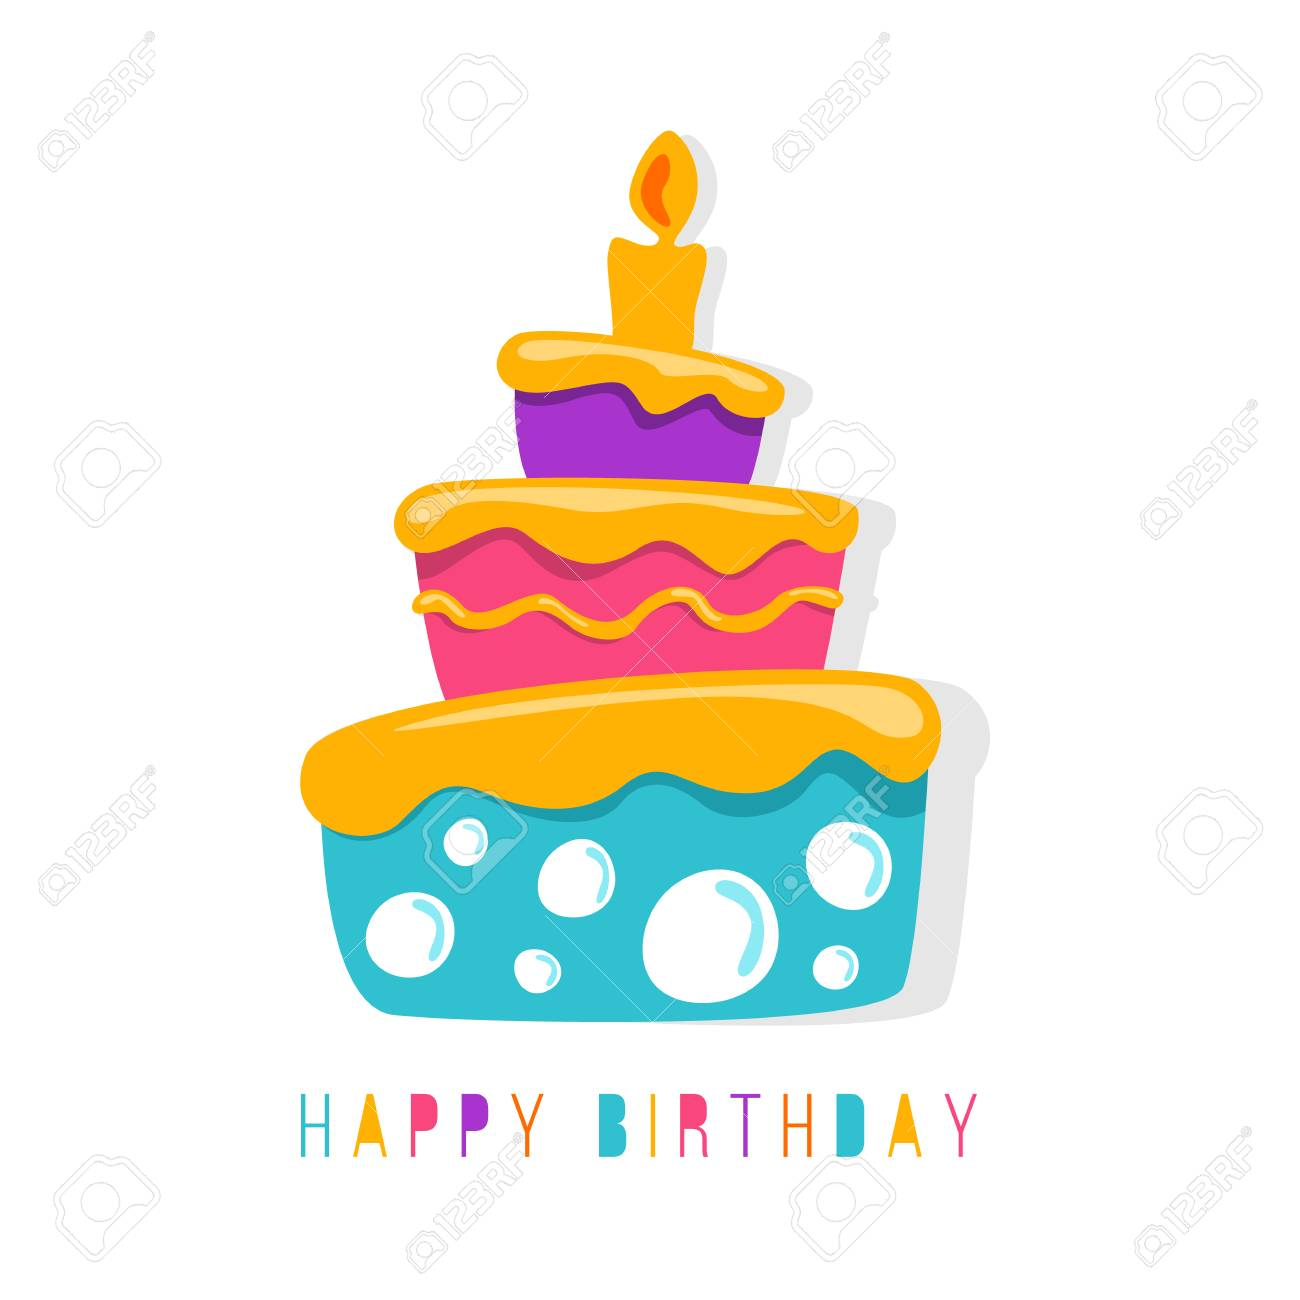 Happy Birthday Banner With Abstract Simple Cute Cake Symbol Vector Design Stock